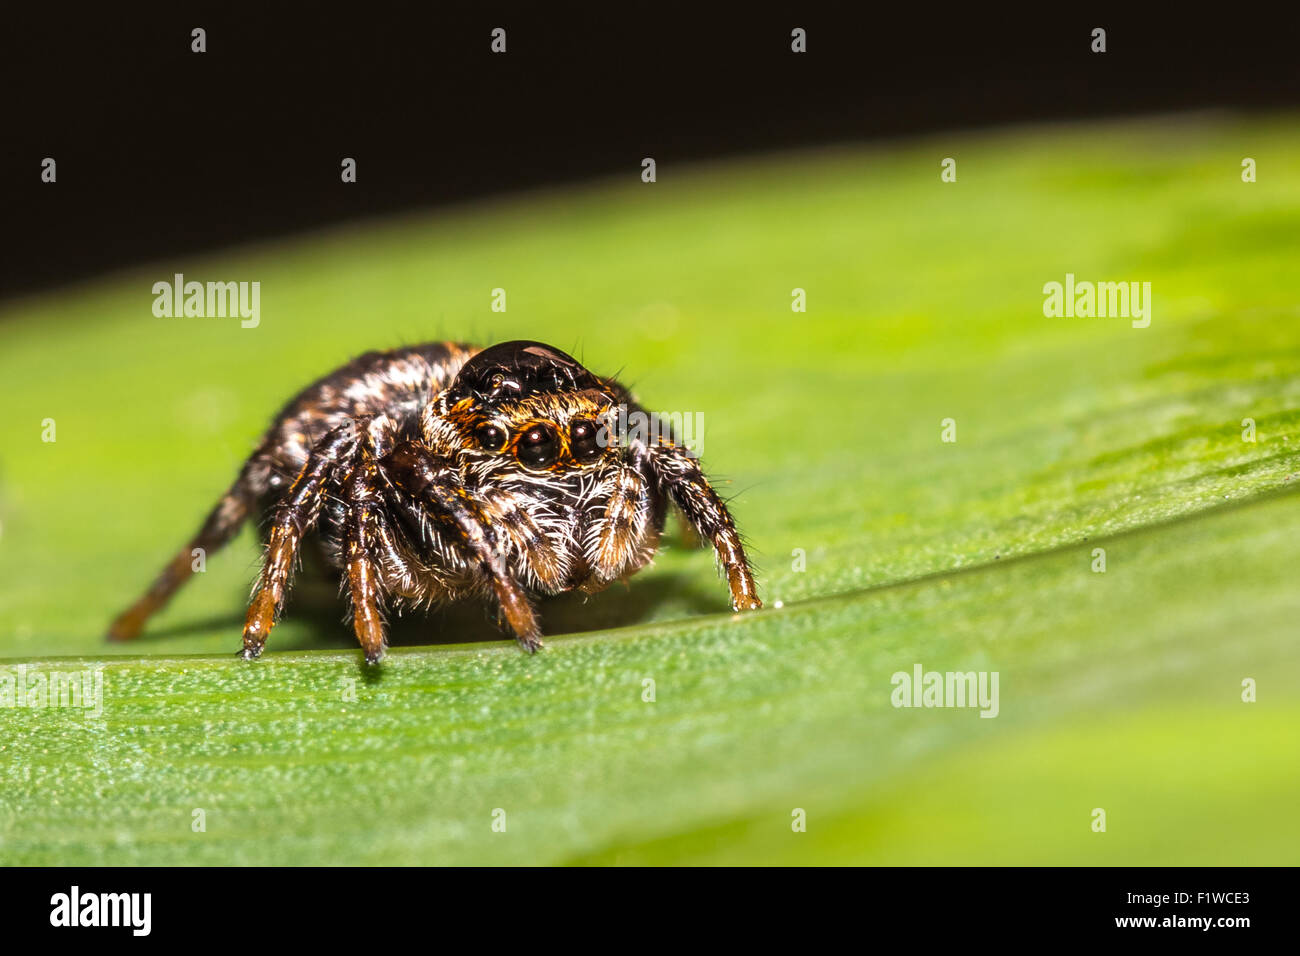 A jumping spider on a leaf. - Stock Image